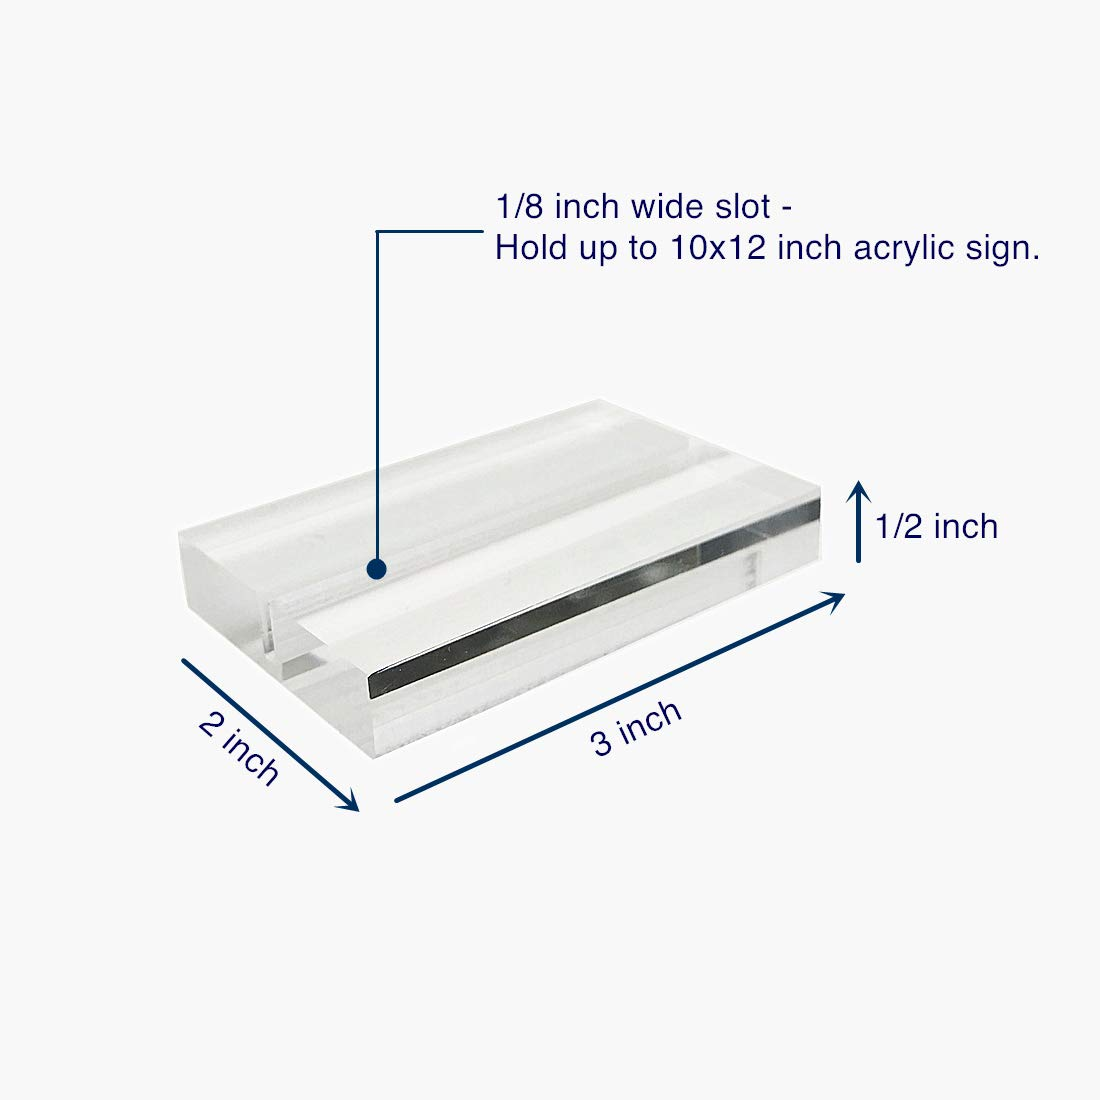 UNIQOOO 3'' Large Clear Acrylic Sign Holders | Wedding Sign Holders |Table Numbers Display Stands | Acrylic Place Card Slot Stand, Perfect for Retail Shop Cafe Events, Set of 20 by UNIQOOO (Image #3)